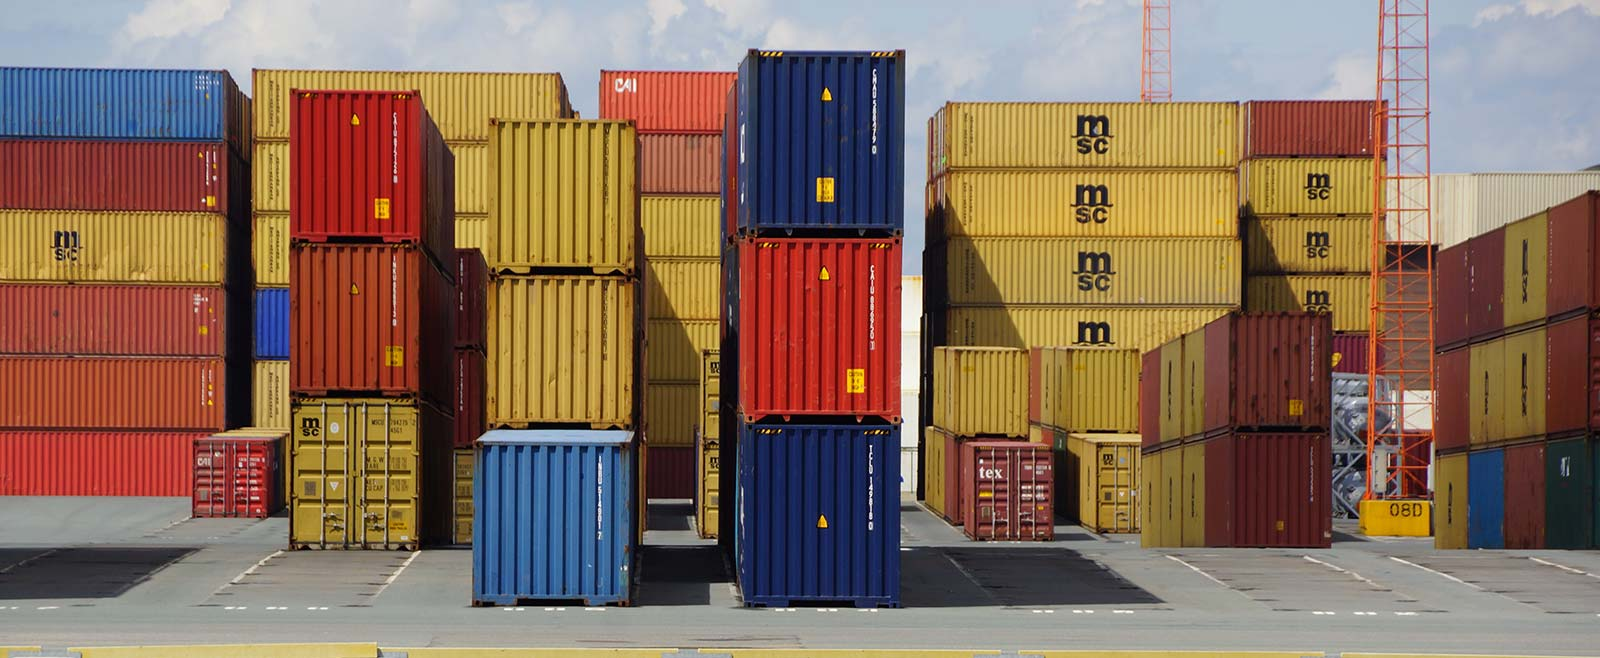 Freight and cargo shipping containers